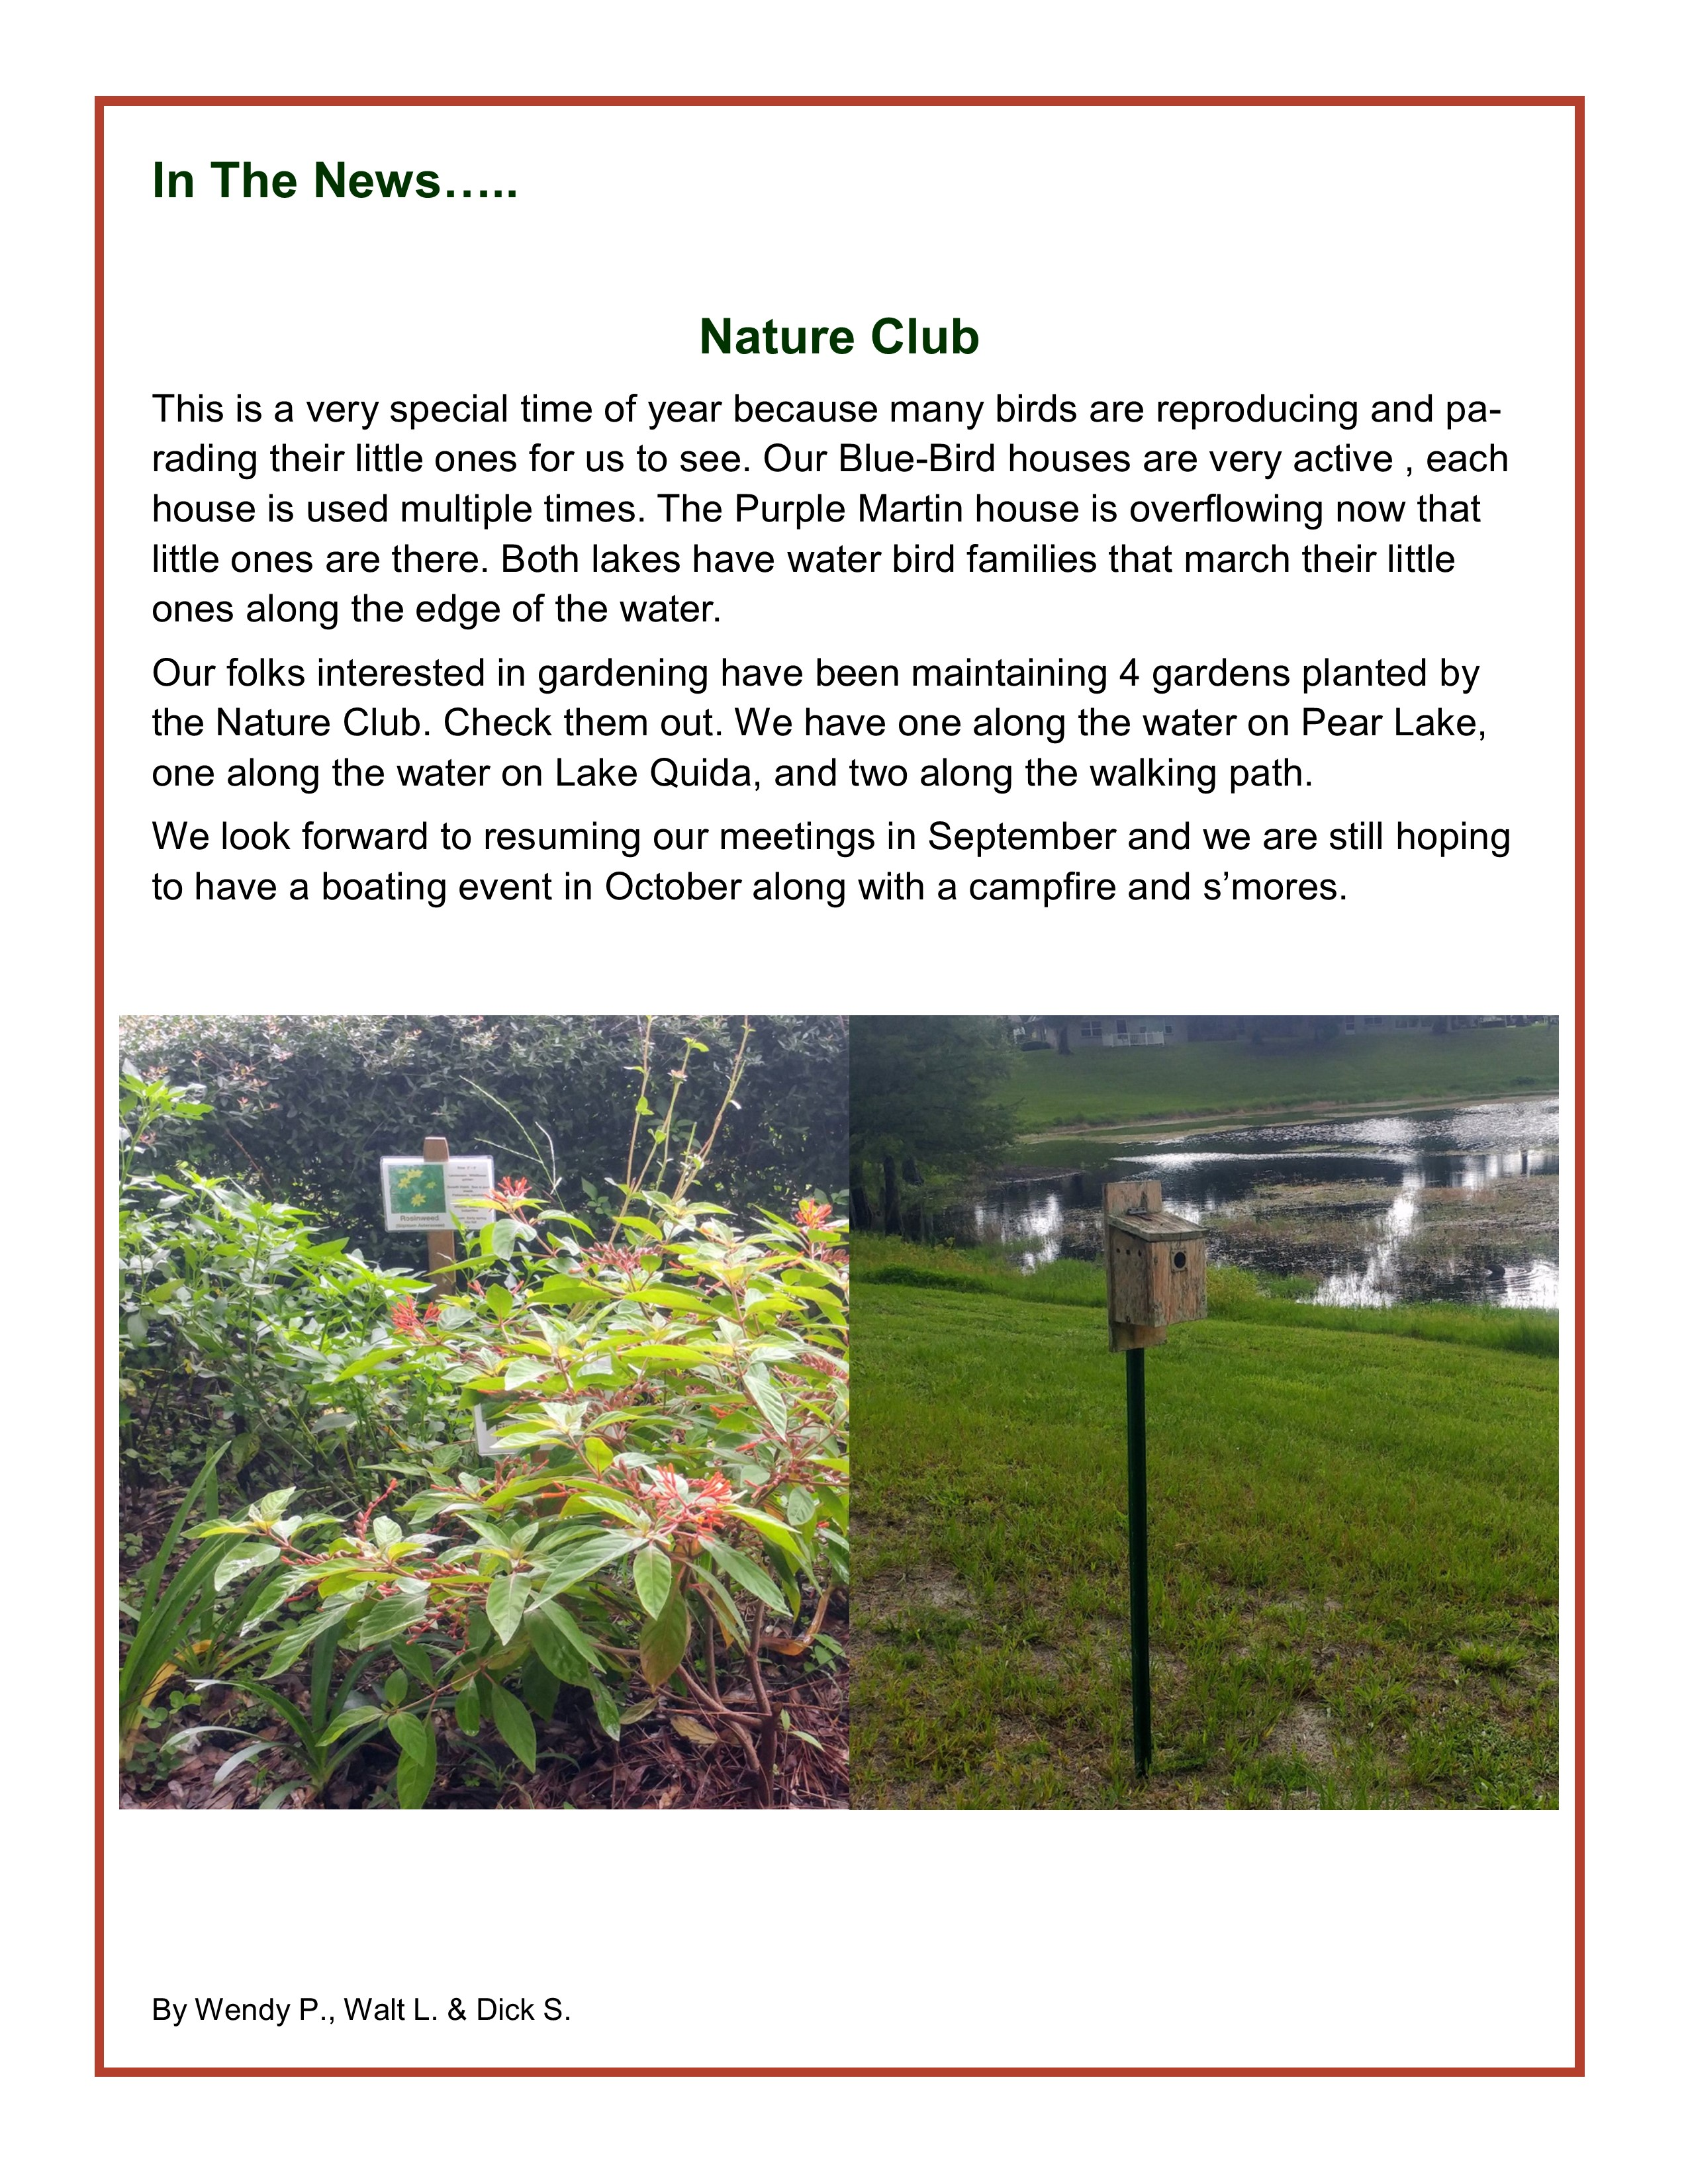 Lakeview Terrace Nature Club